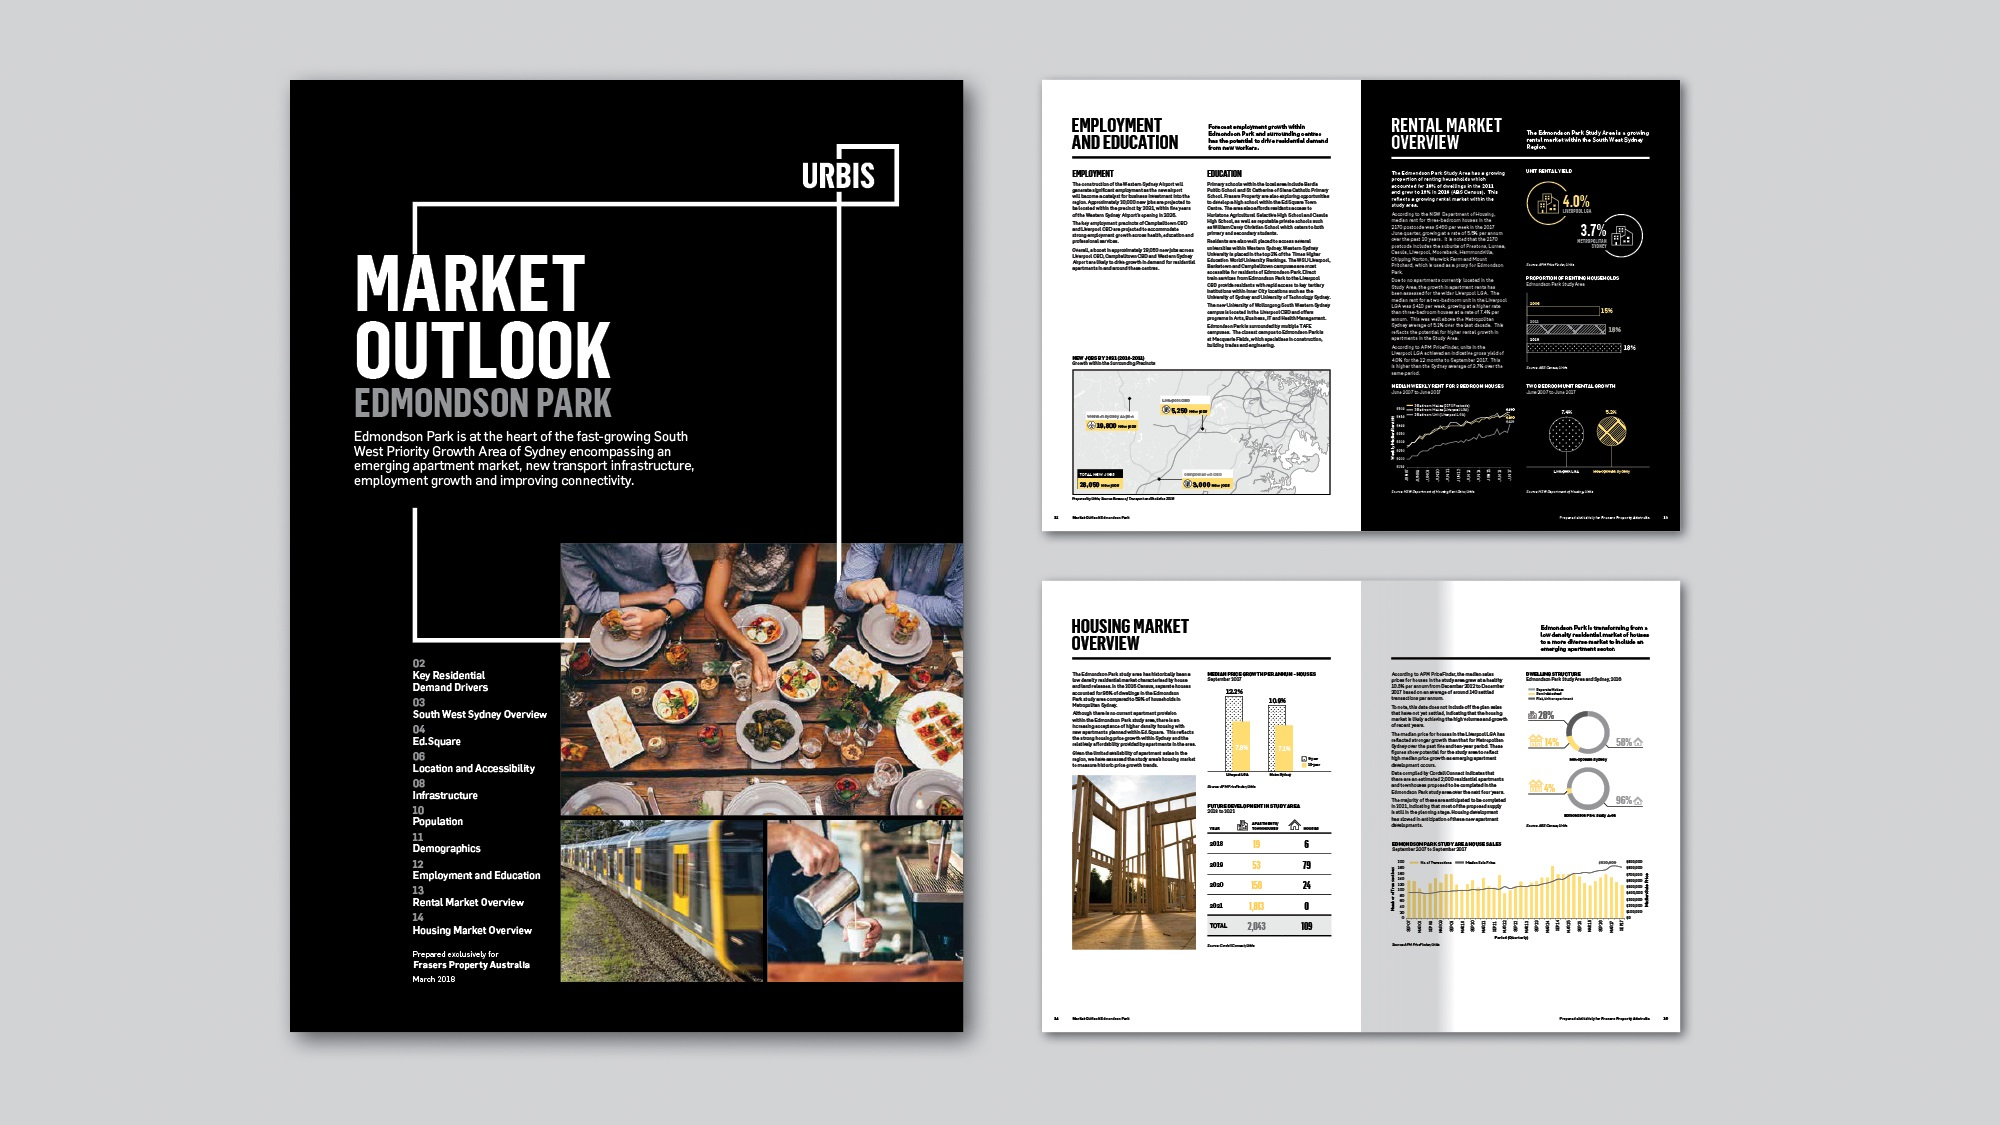 Market Outlook brochure